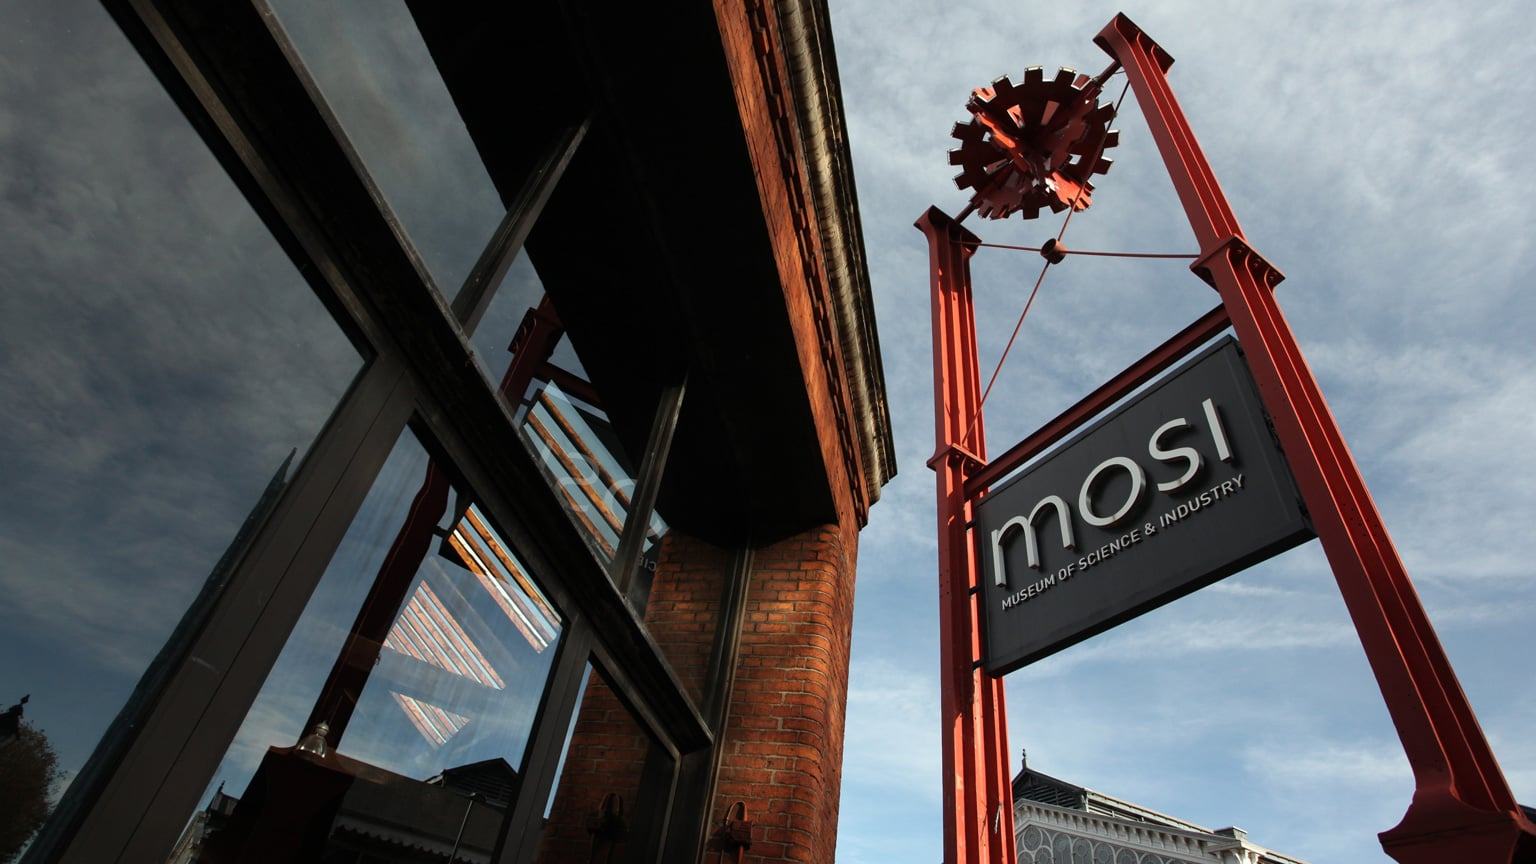 6. MOSI (Musuem of Science and Industry), Manchester - Reduced price entry to exhibitions with National Art Pass